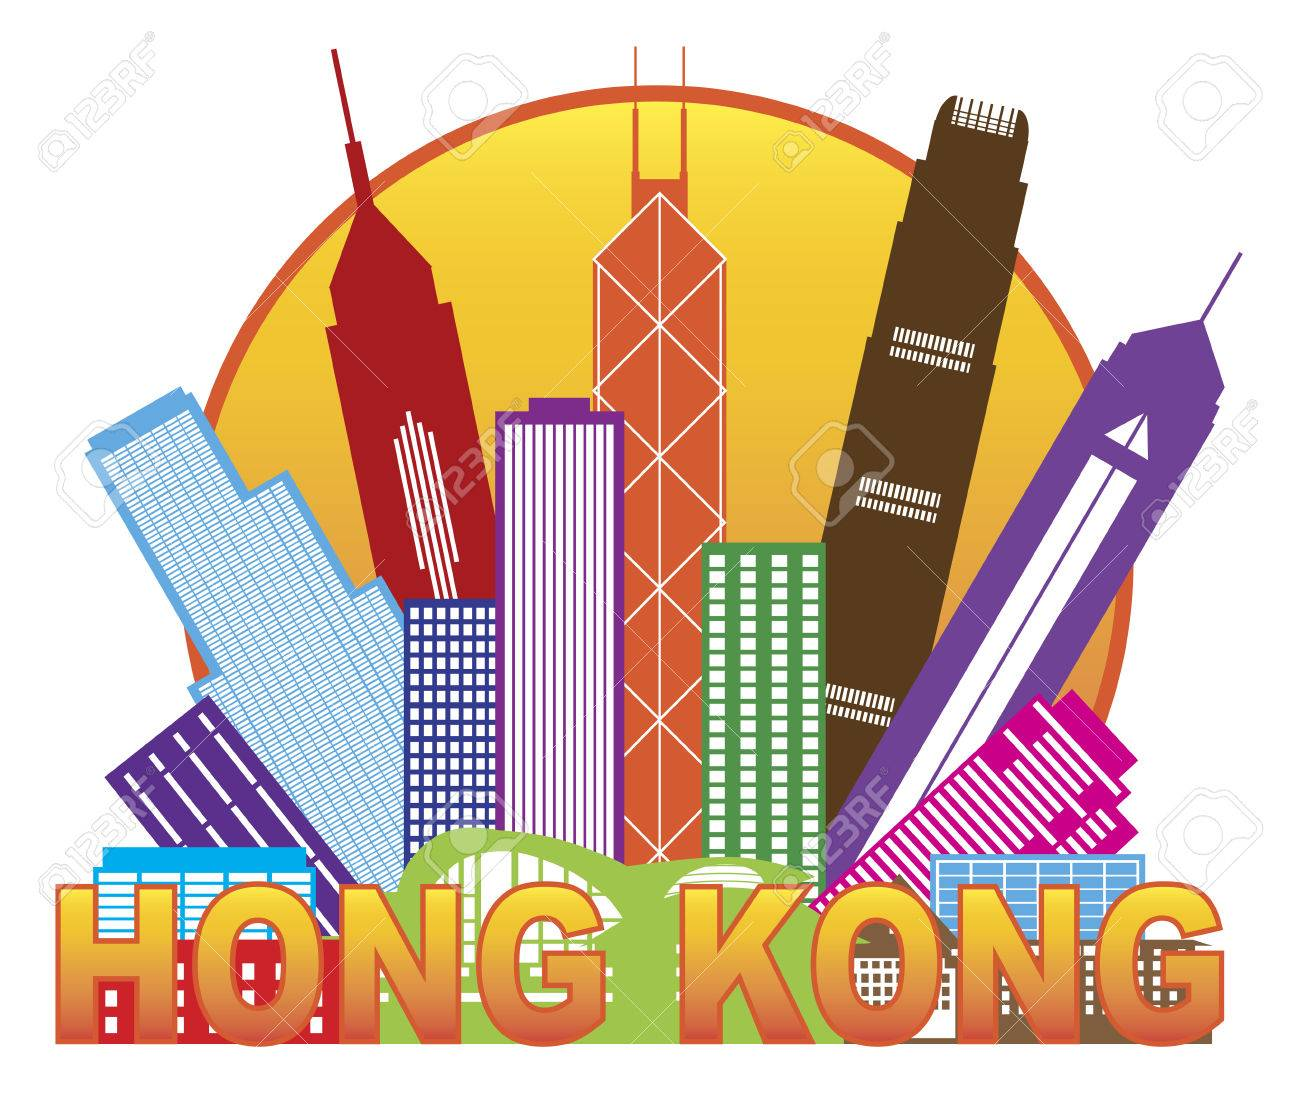 Hong Kong City Skyline in Circle Color Outline Isolated on White Background Illustration - 31404656